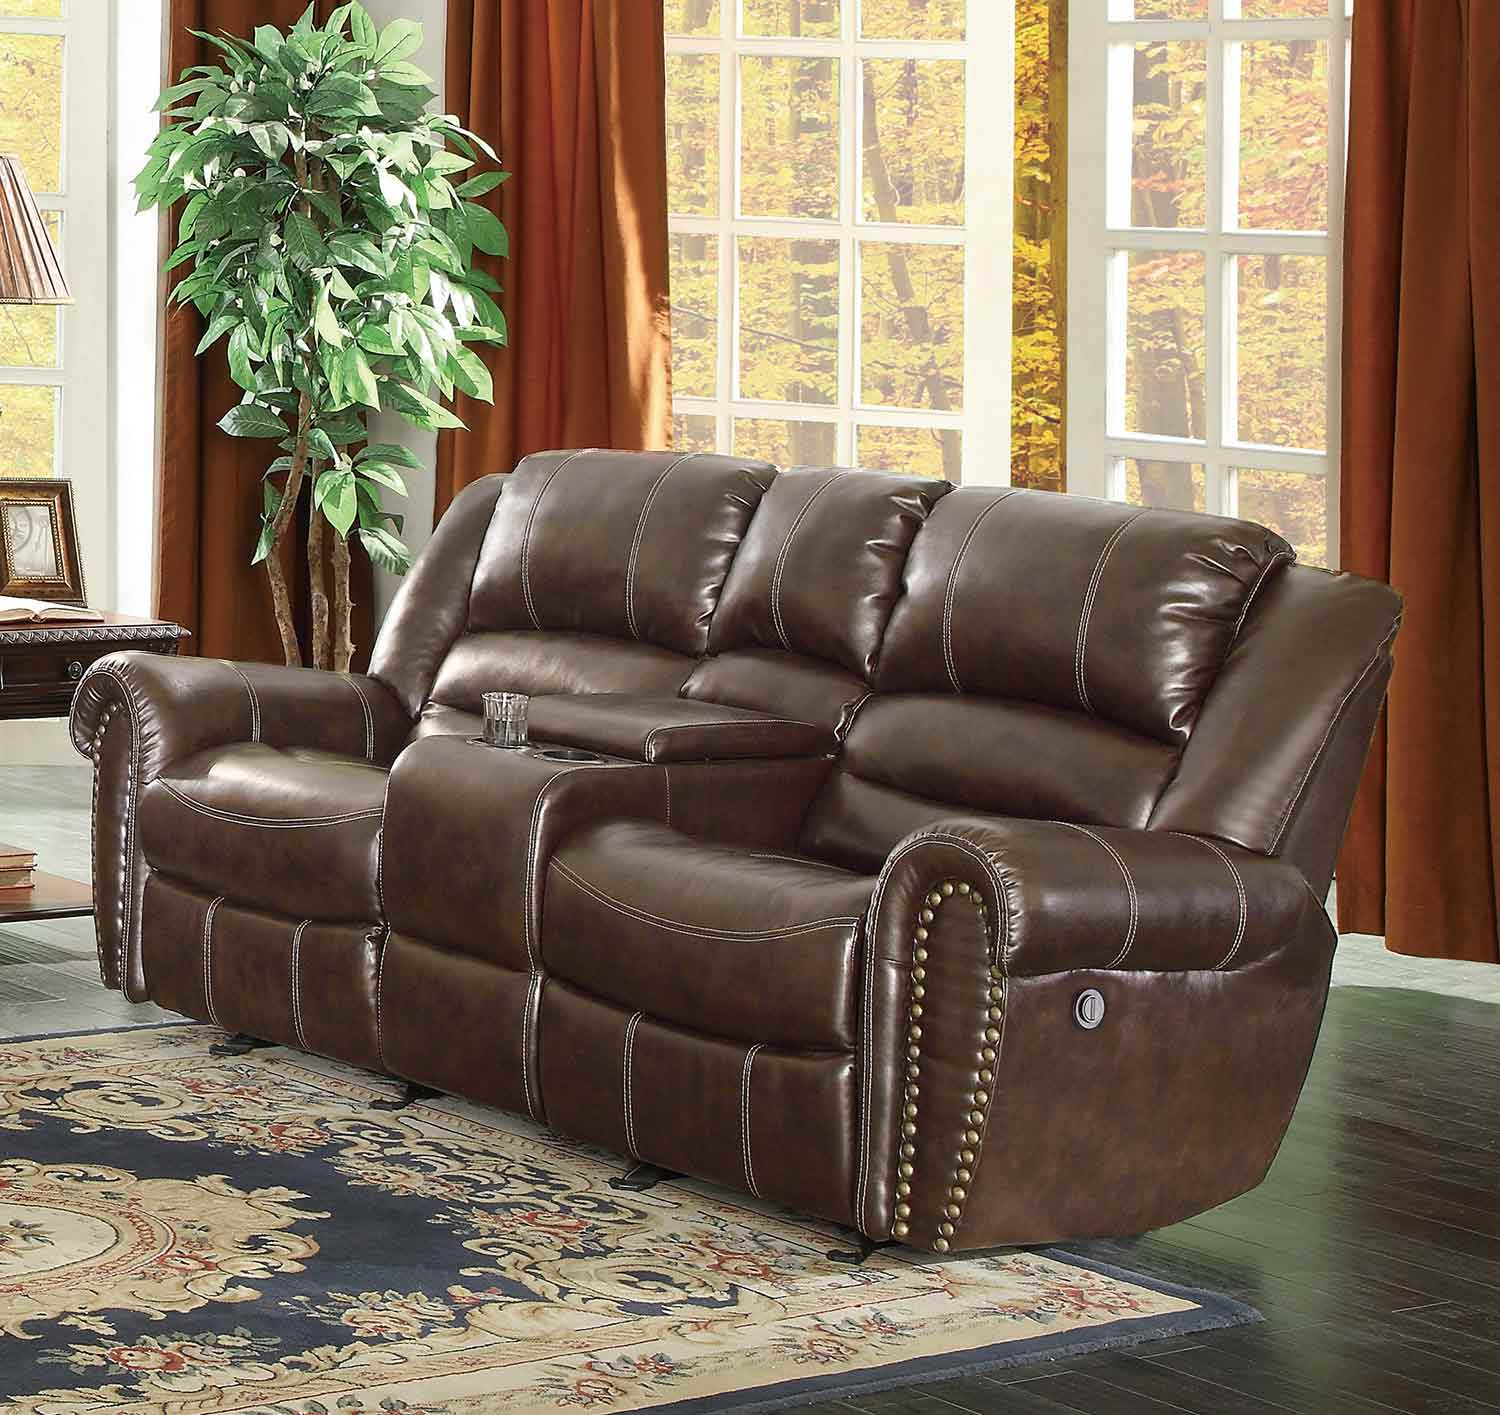 Homelegance center hill power reclining sofa set dark brown 9668brw 3pw sofa set Reclining loveseat with center console